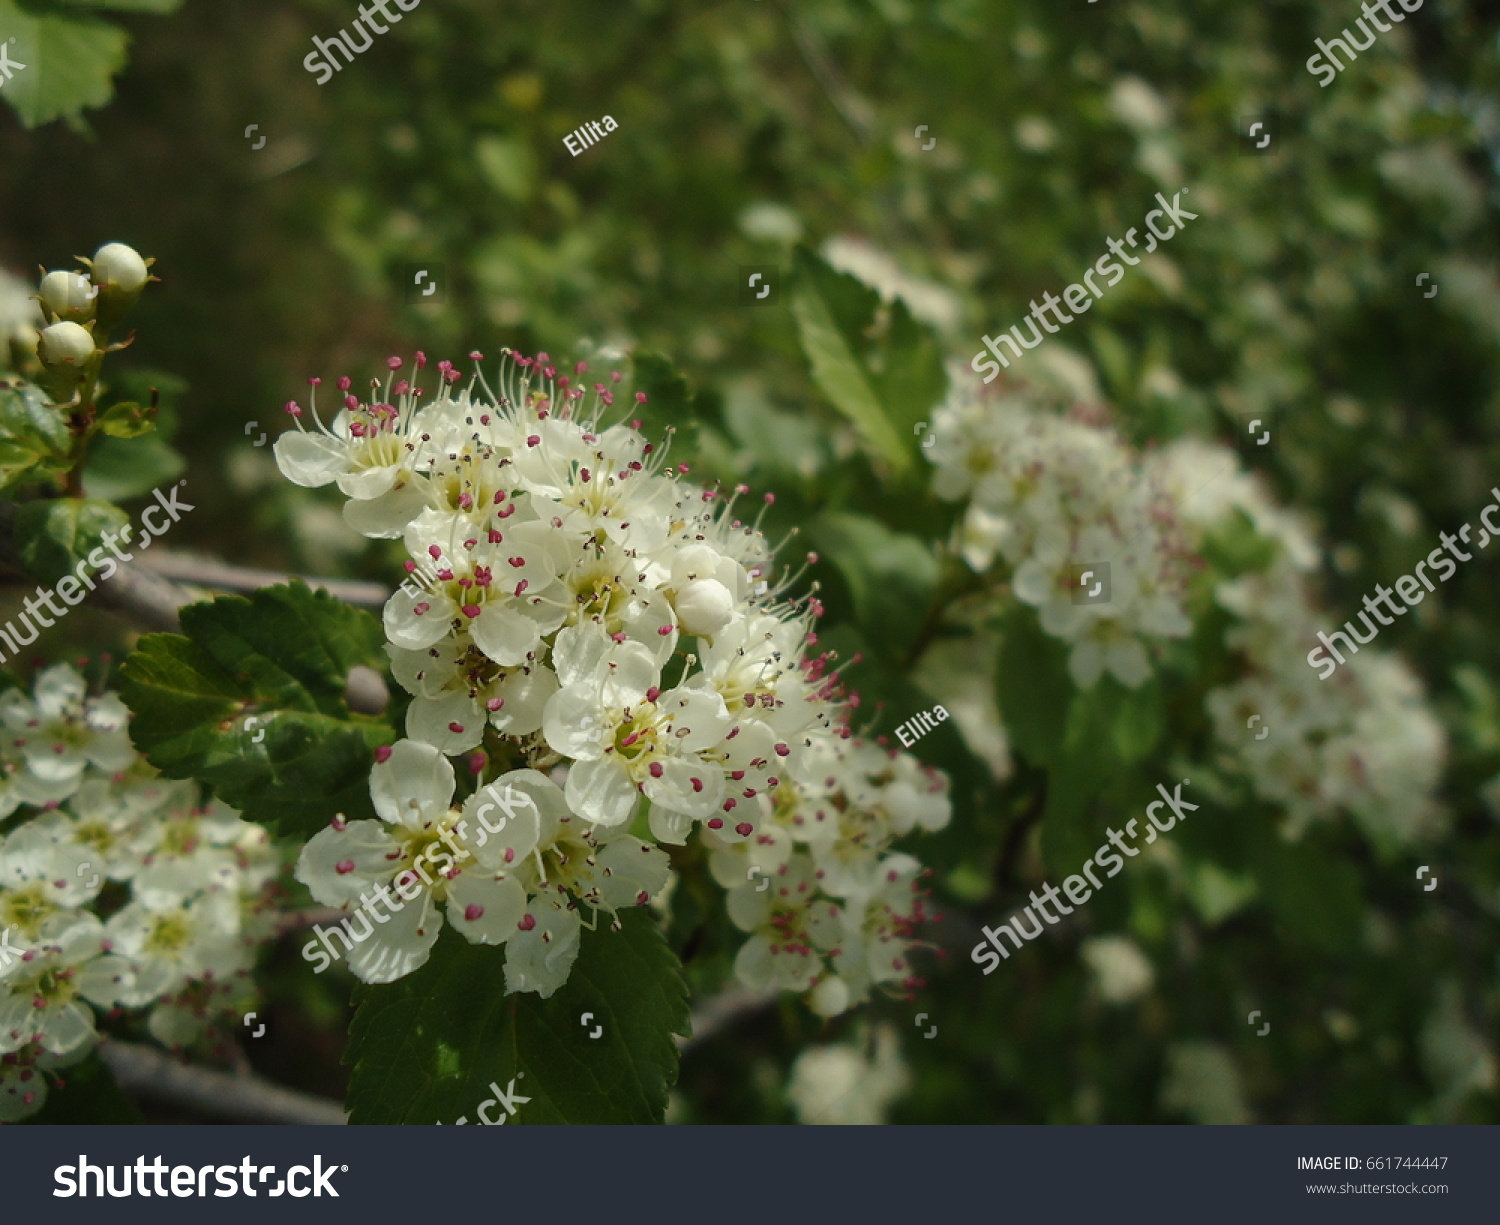 White Flower Clusters Small White Blooms Stock Photo Royalty Free